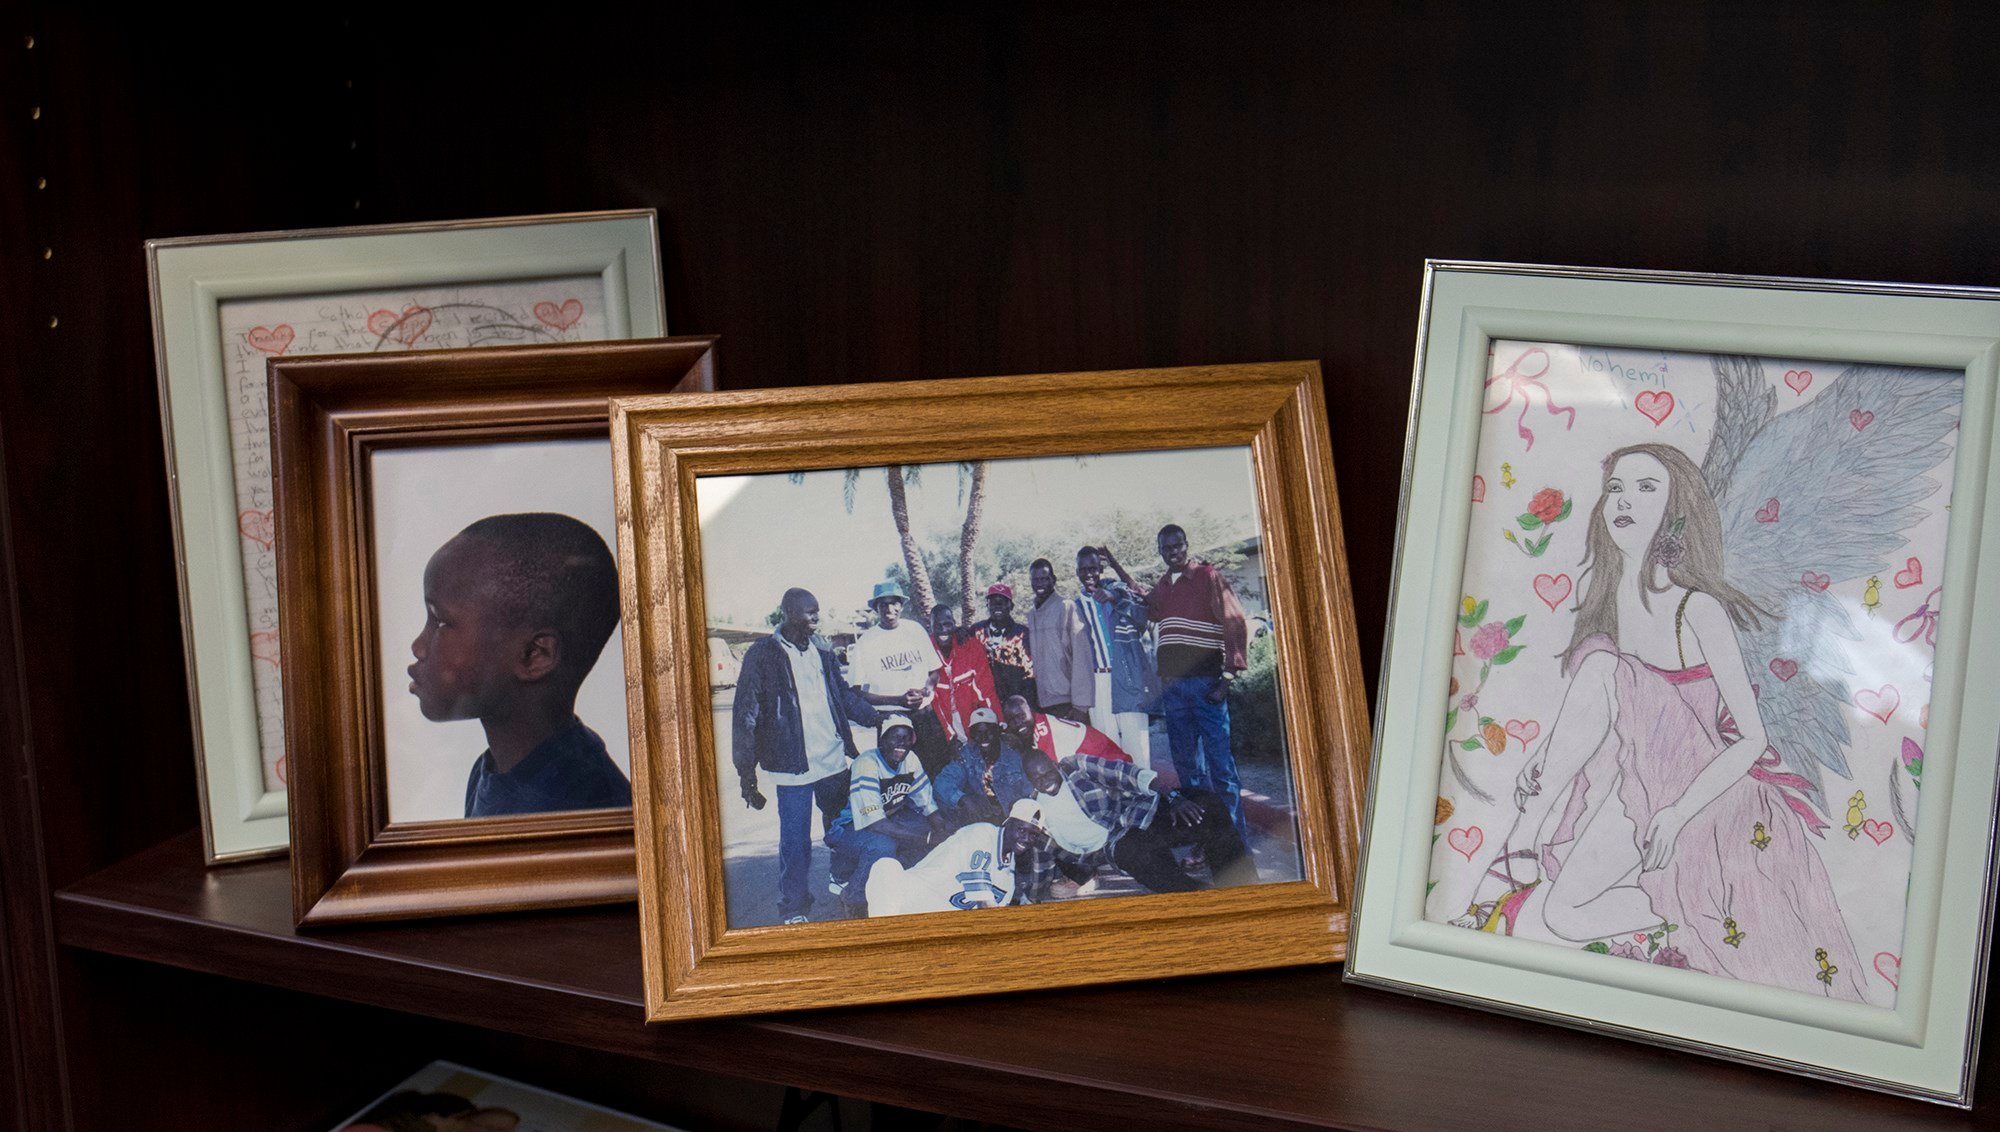 Some of the earliest refugee children in Arizona were young men fleeing the Sudan. Their photos sit on a bookshelf in the Catholic Charities office. (Nicole Tyau/Cronkite News)